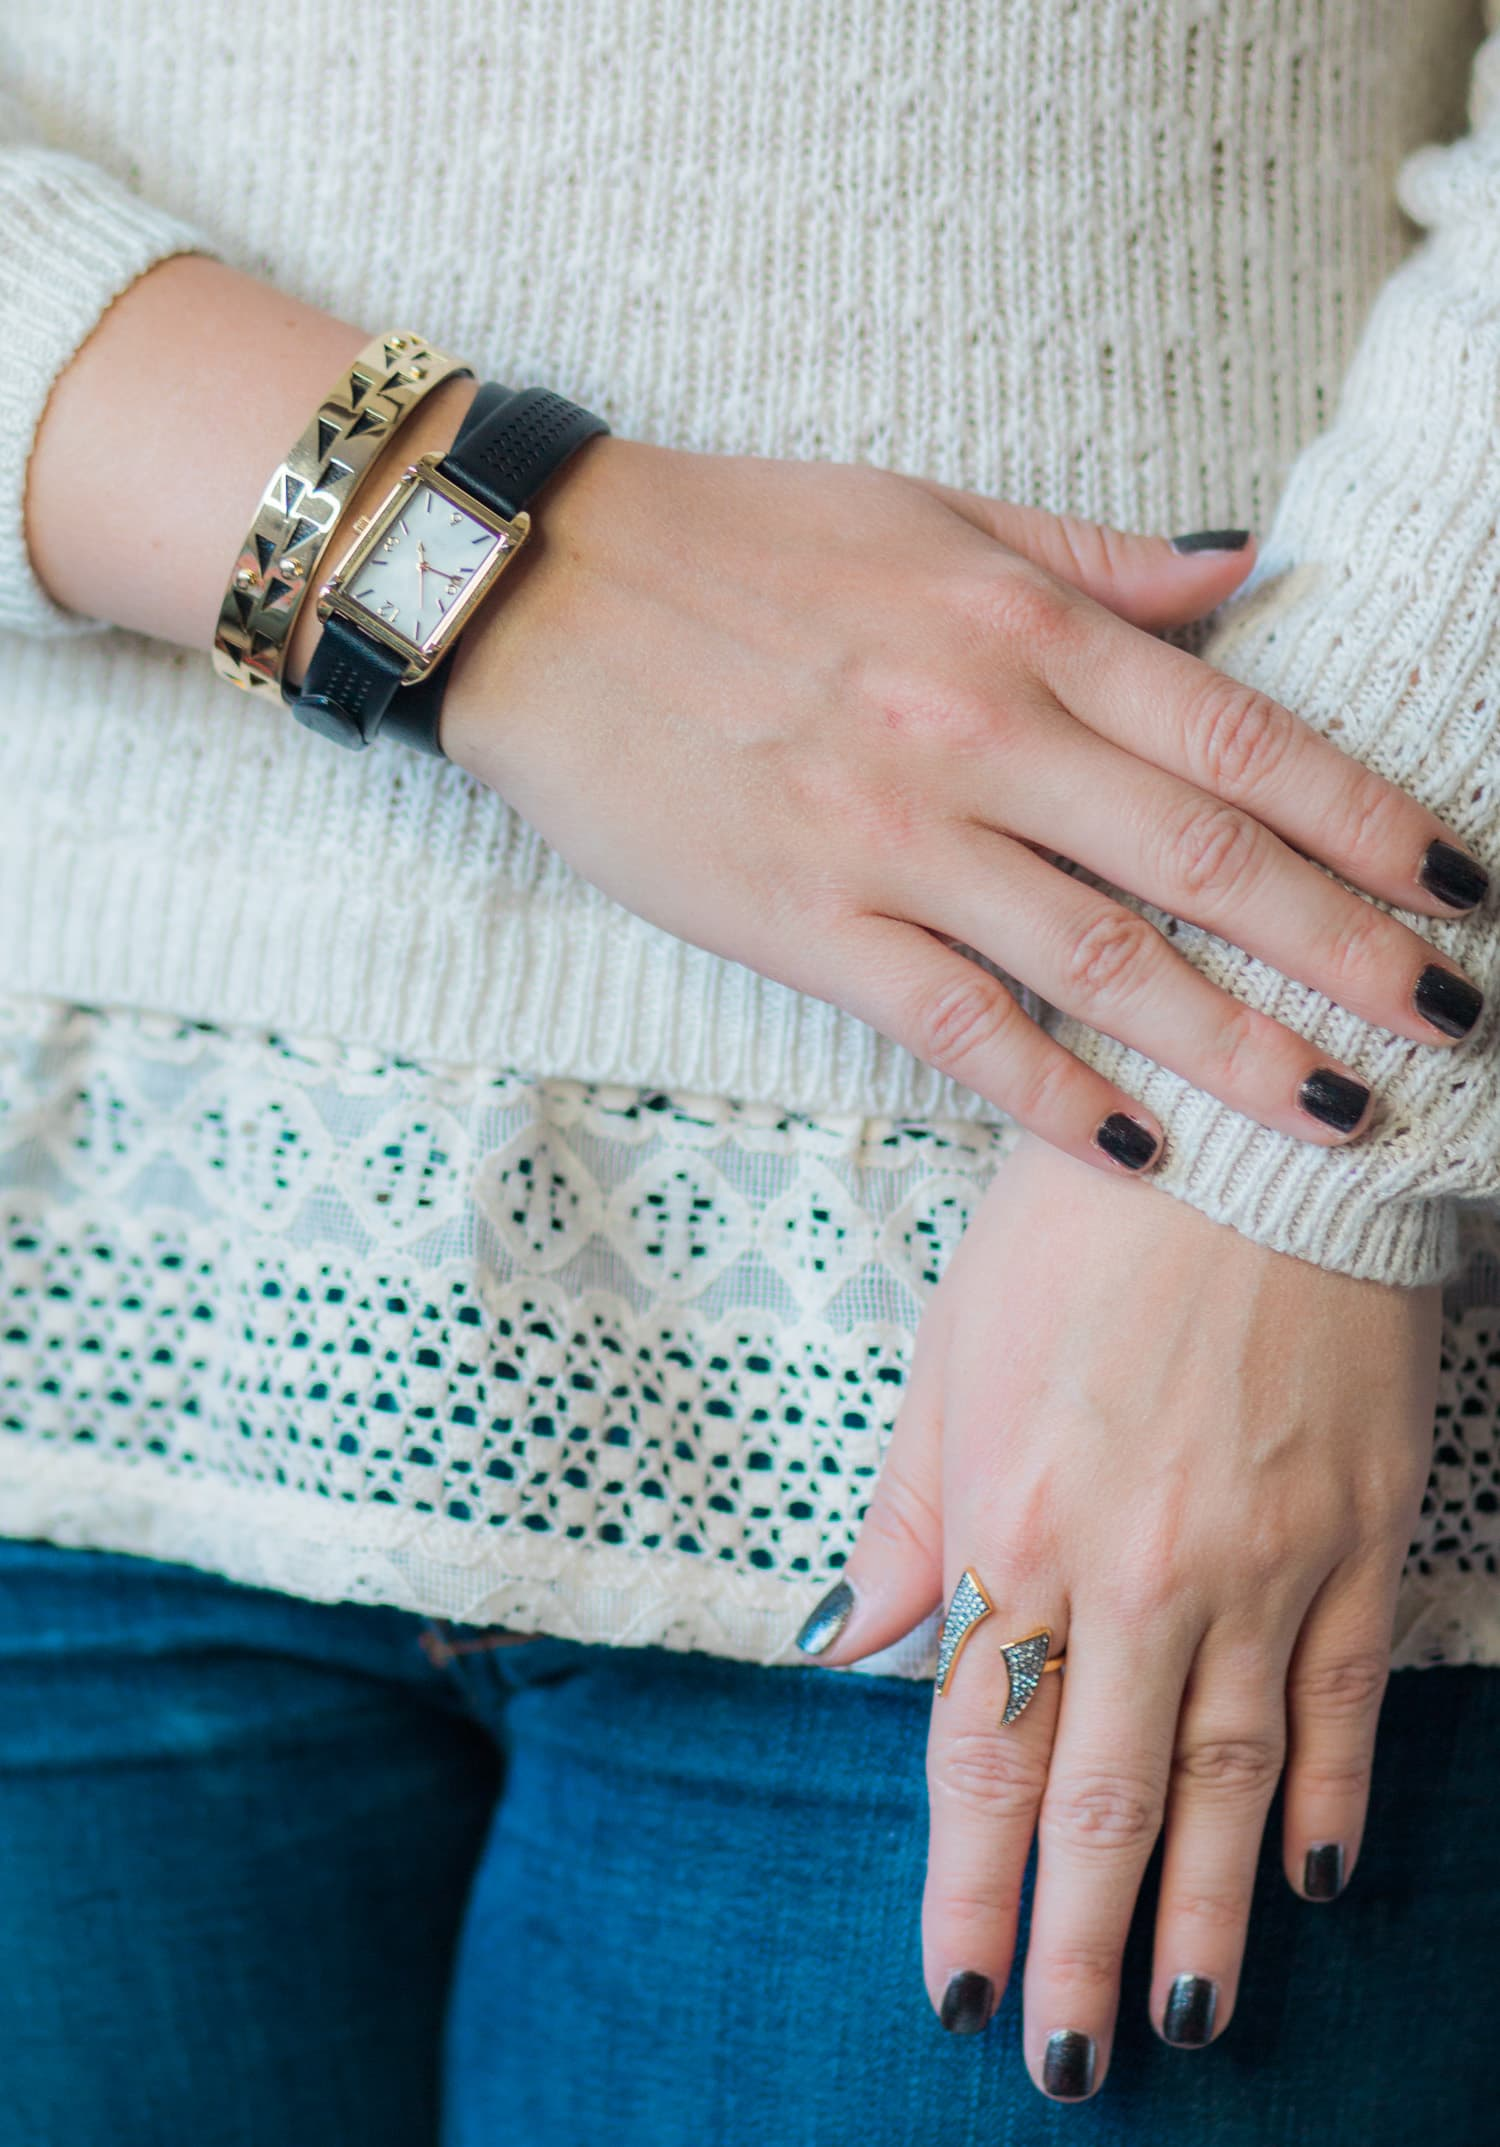 Stella & Dot fall collection - including a review of the Pyramid Tank Watch, Addison Cuff, and Pave Horn Ring by Orlando, Florida style blogger Ashley Brooke Nicholas